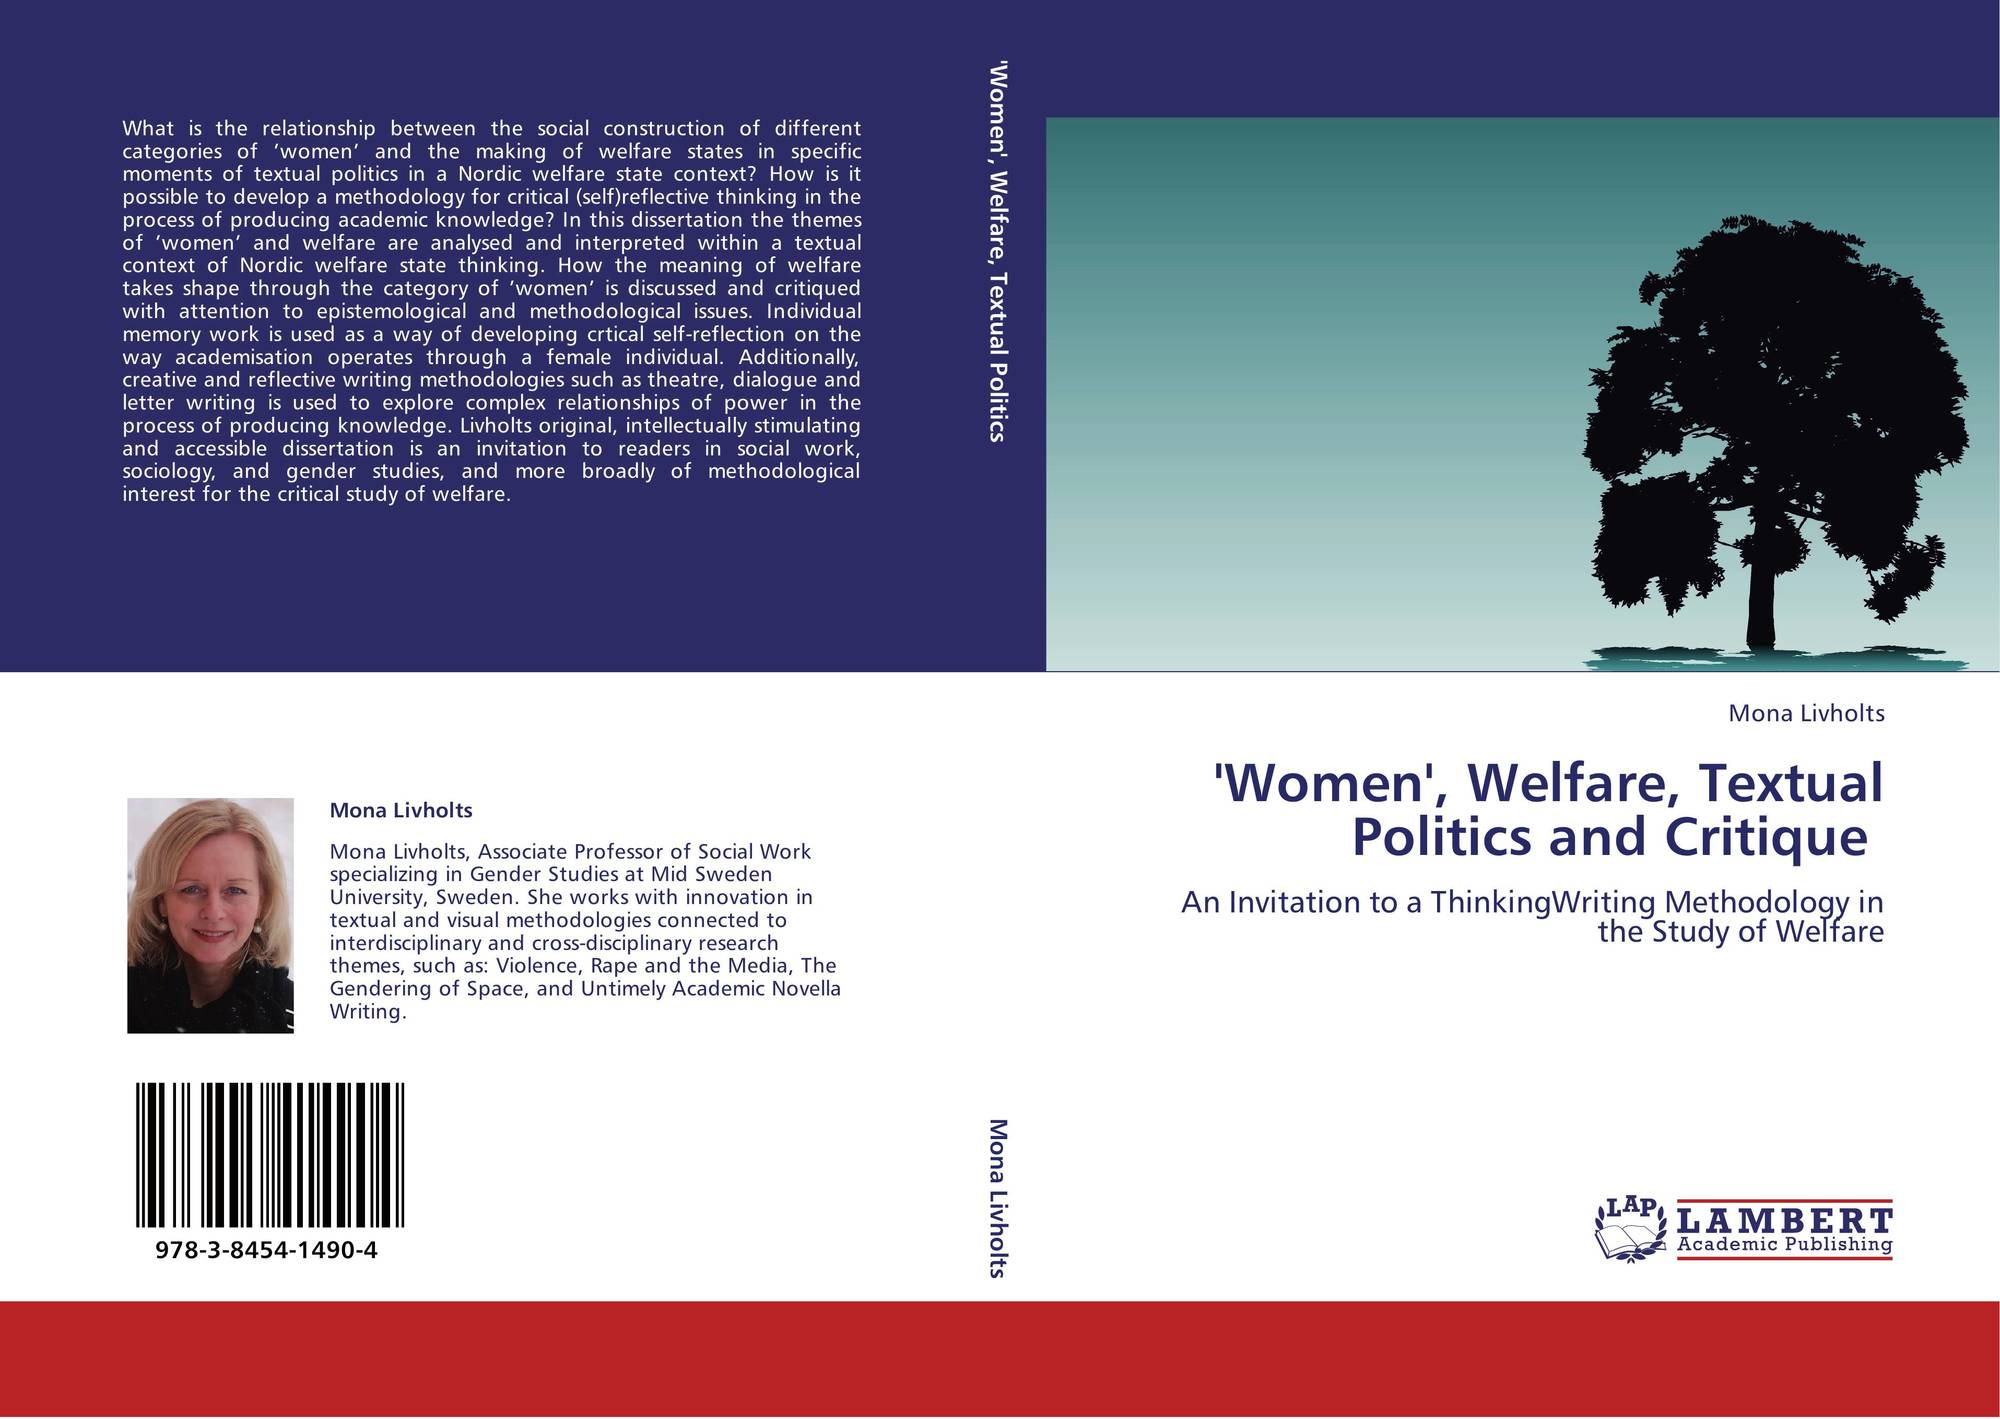 a study on welfare measures Labour welfare measures at wipro, a review of the literature on employee welfare measures, labour welfare ppt topics, literature review on employee welfare scheme in wikipedia, free project report about labour welfare measures in indian railways, project questions for labour welfare, employee satisfaction on welfare measures review of literature.